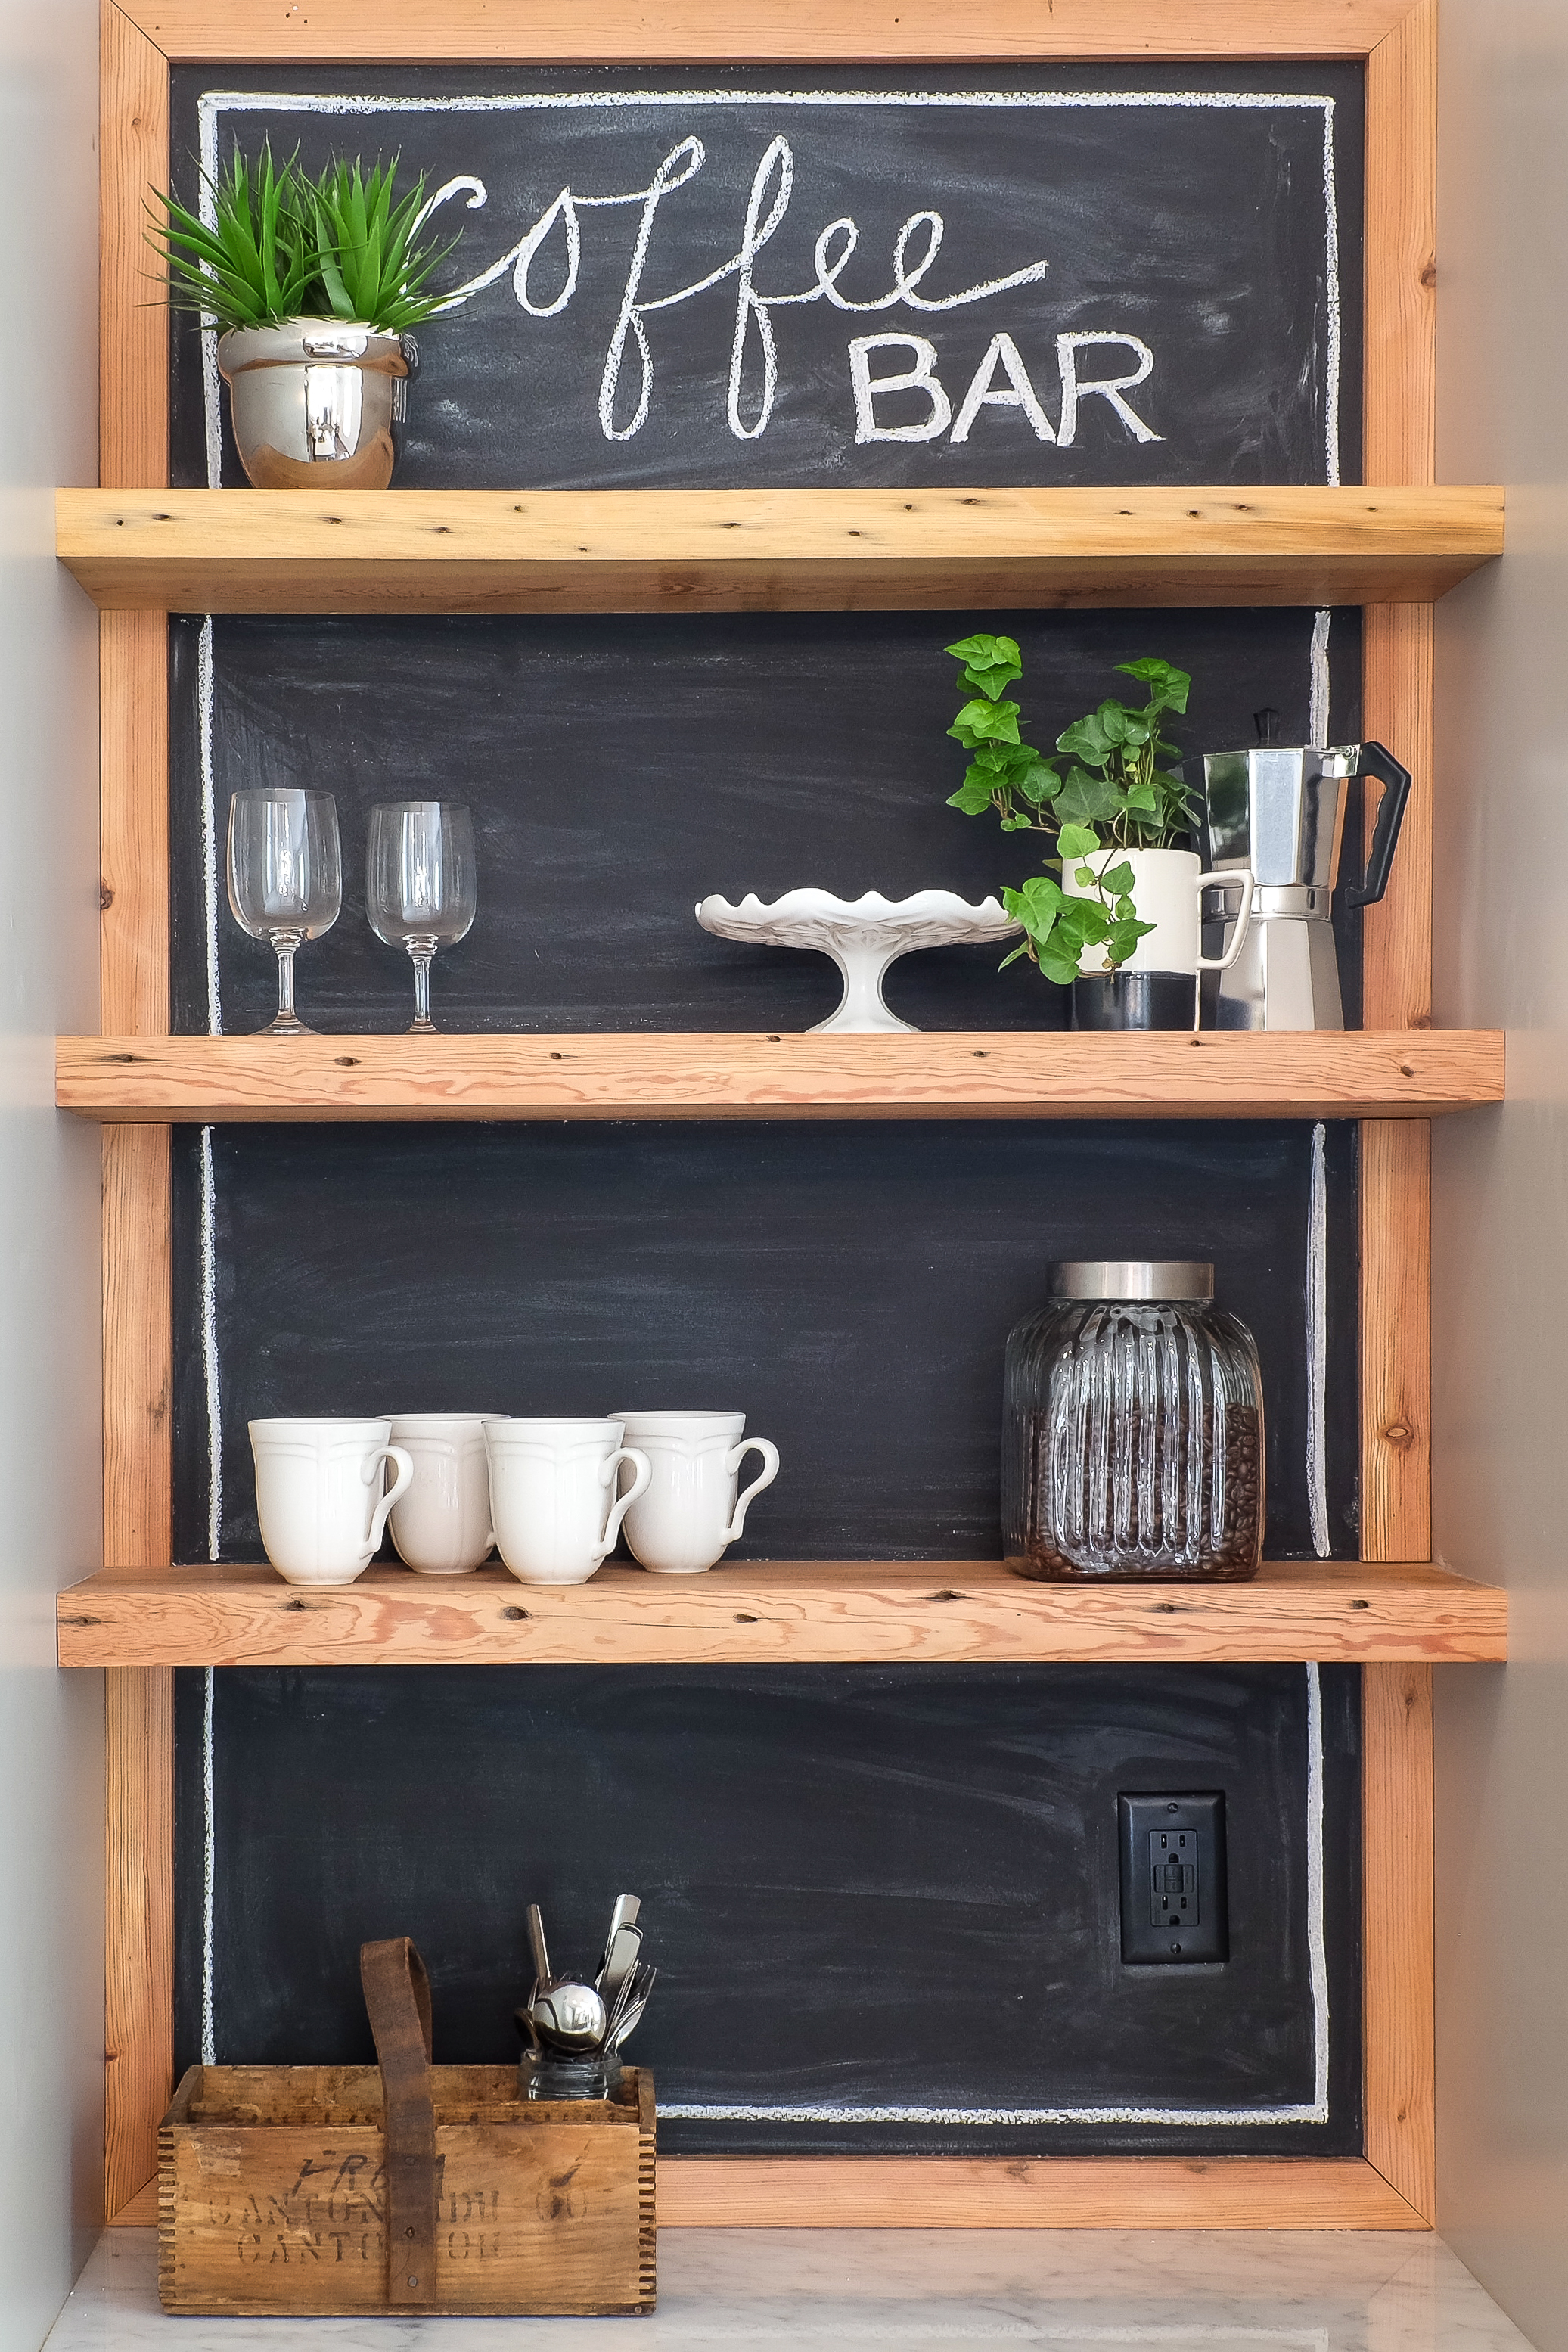 Coffee Bar with Salvaged Wood Shelves and Chalkboard Paint Backsplash